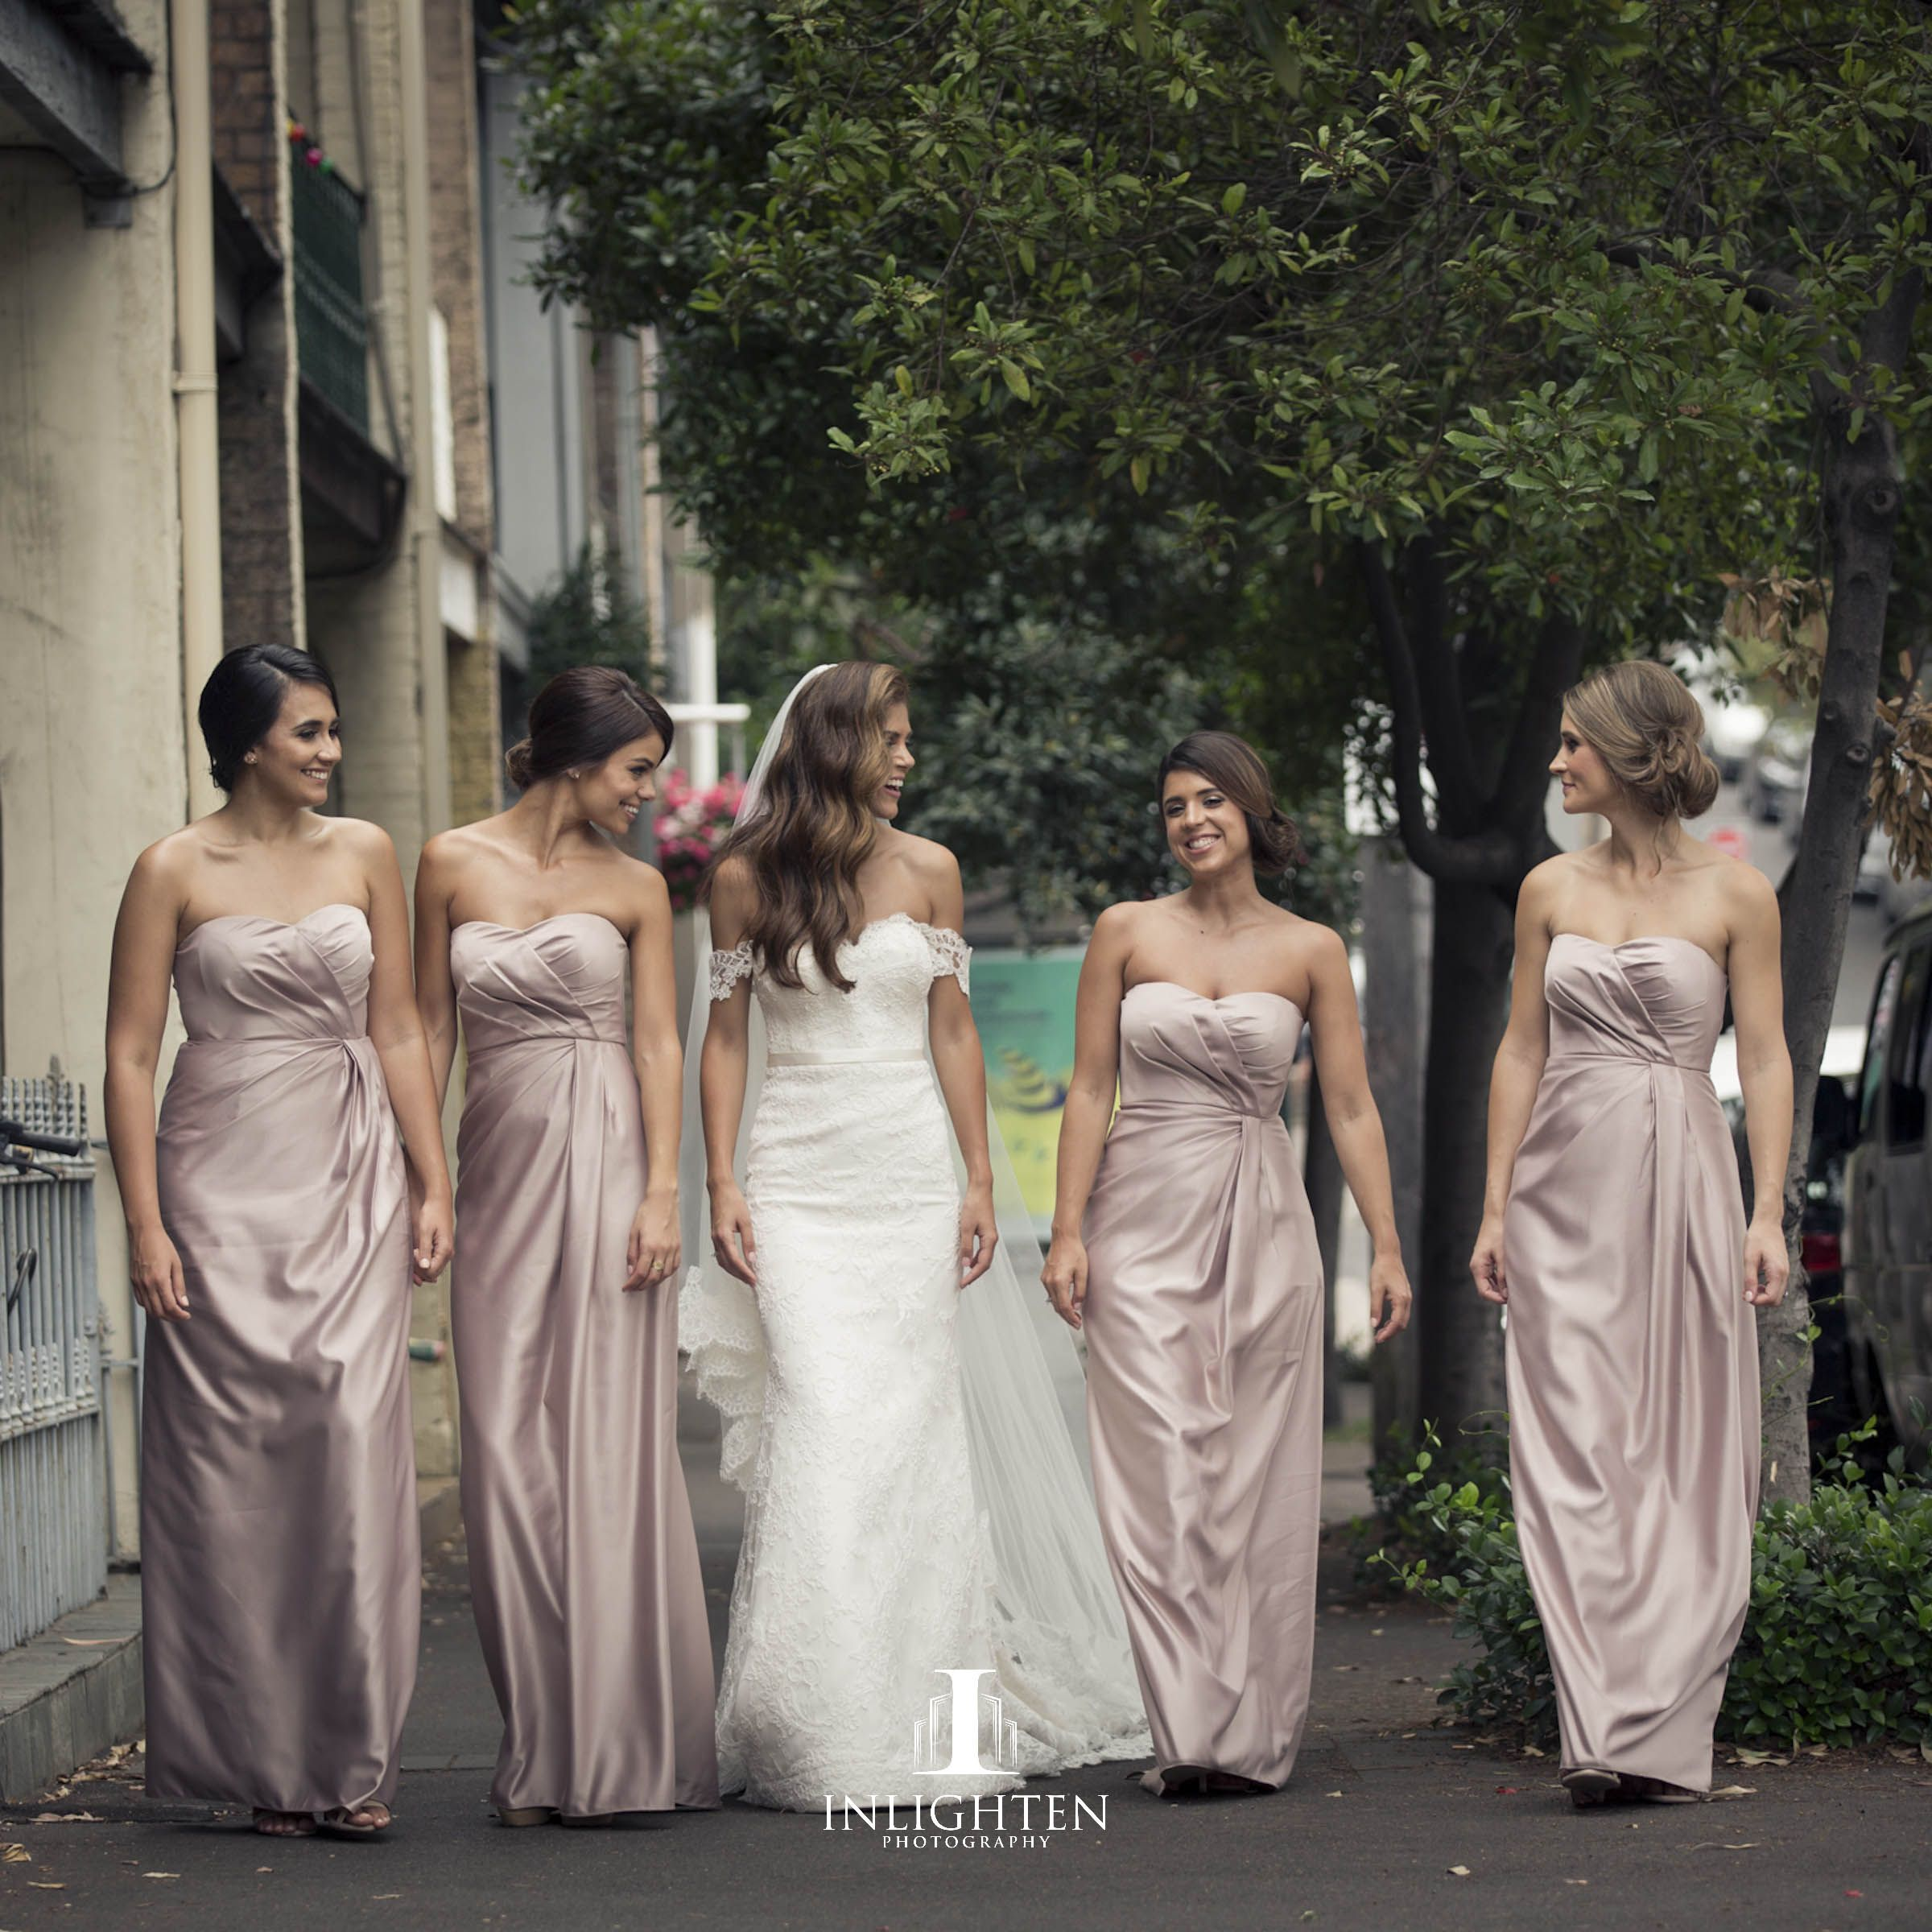 ae65779391df5 Our gorgeous bride Kystal Chronis on her wedding day – bridesmaids wearing  our blush Siobhan Dress.  realrunway  whiterunway  realwedding